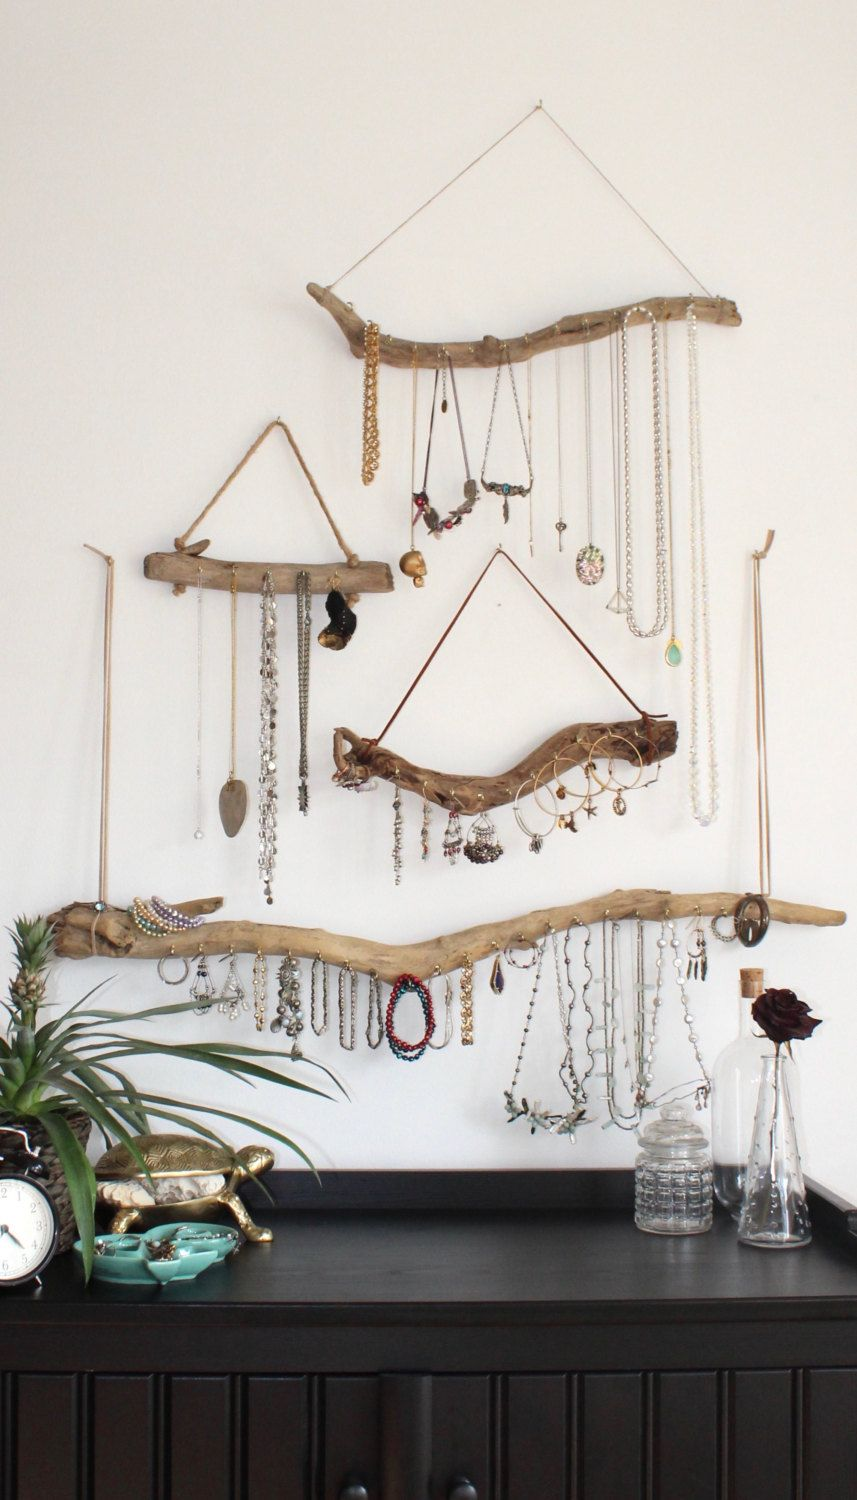 Use to hang my key chain collection?